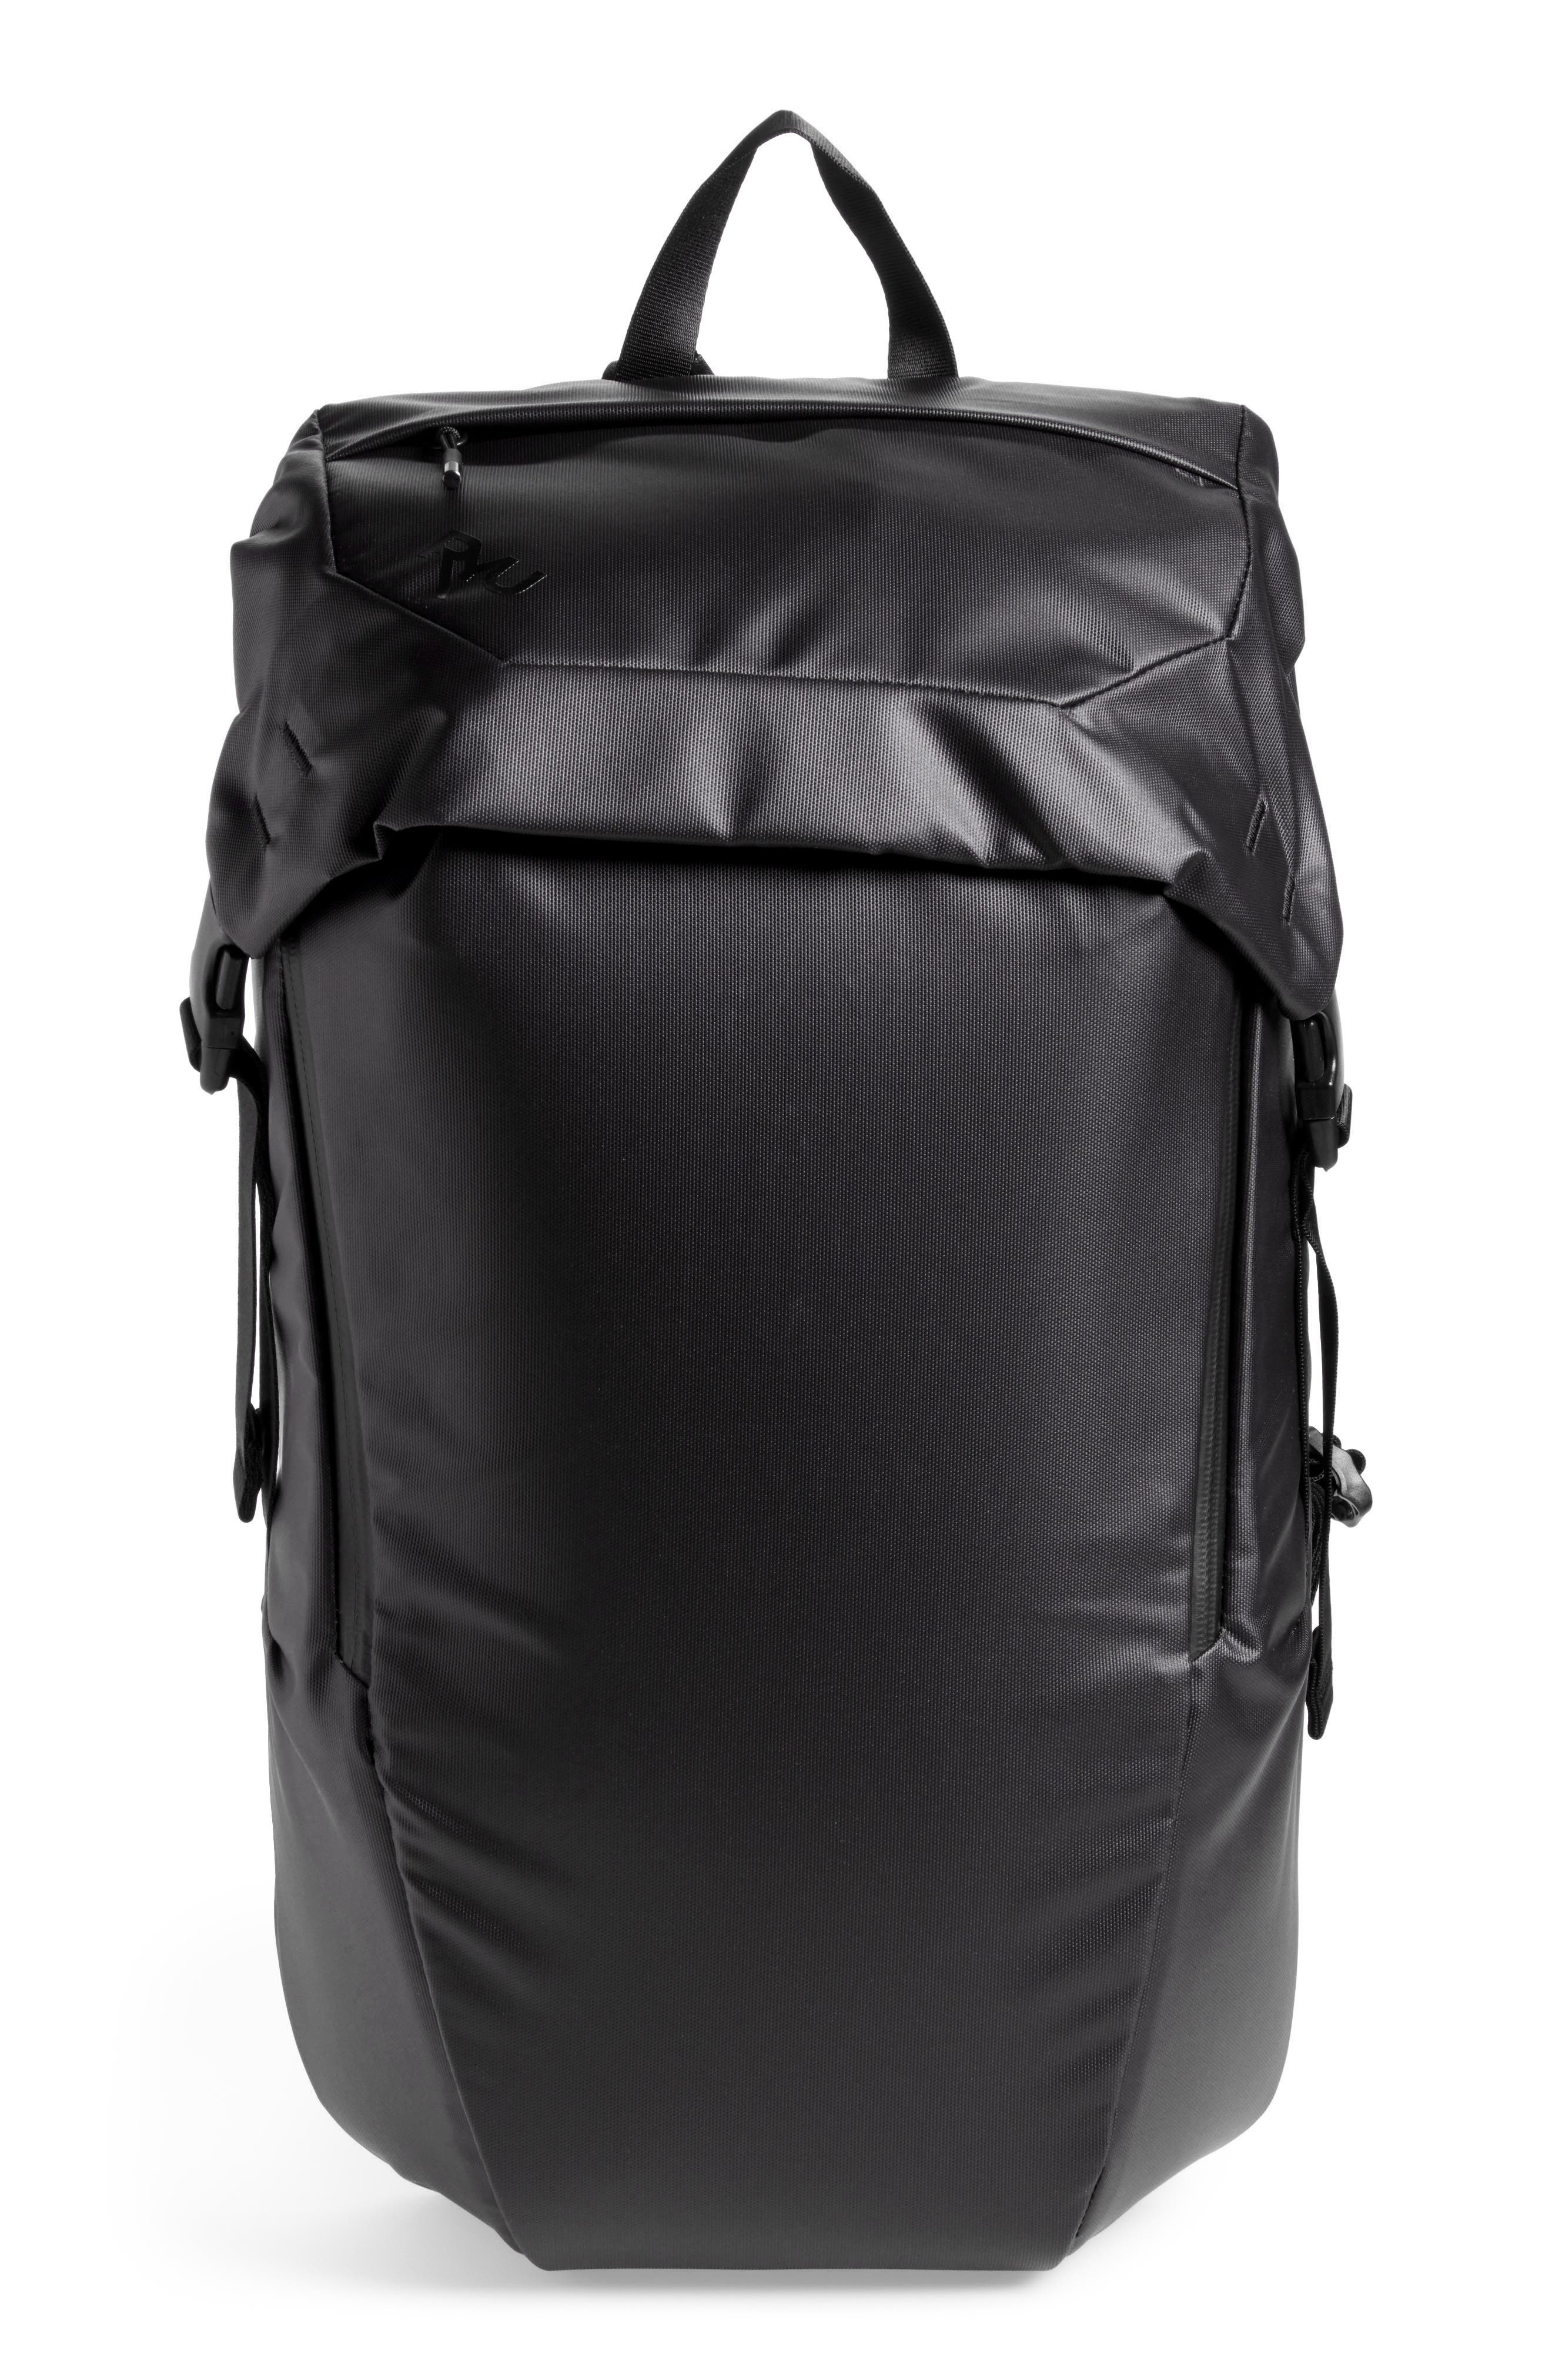 Quick Pack Backpack,                         Main,                         color,